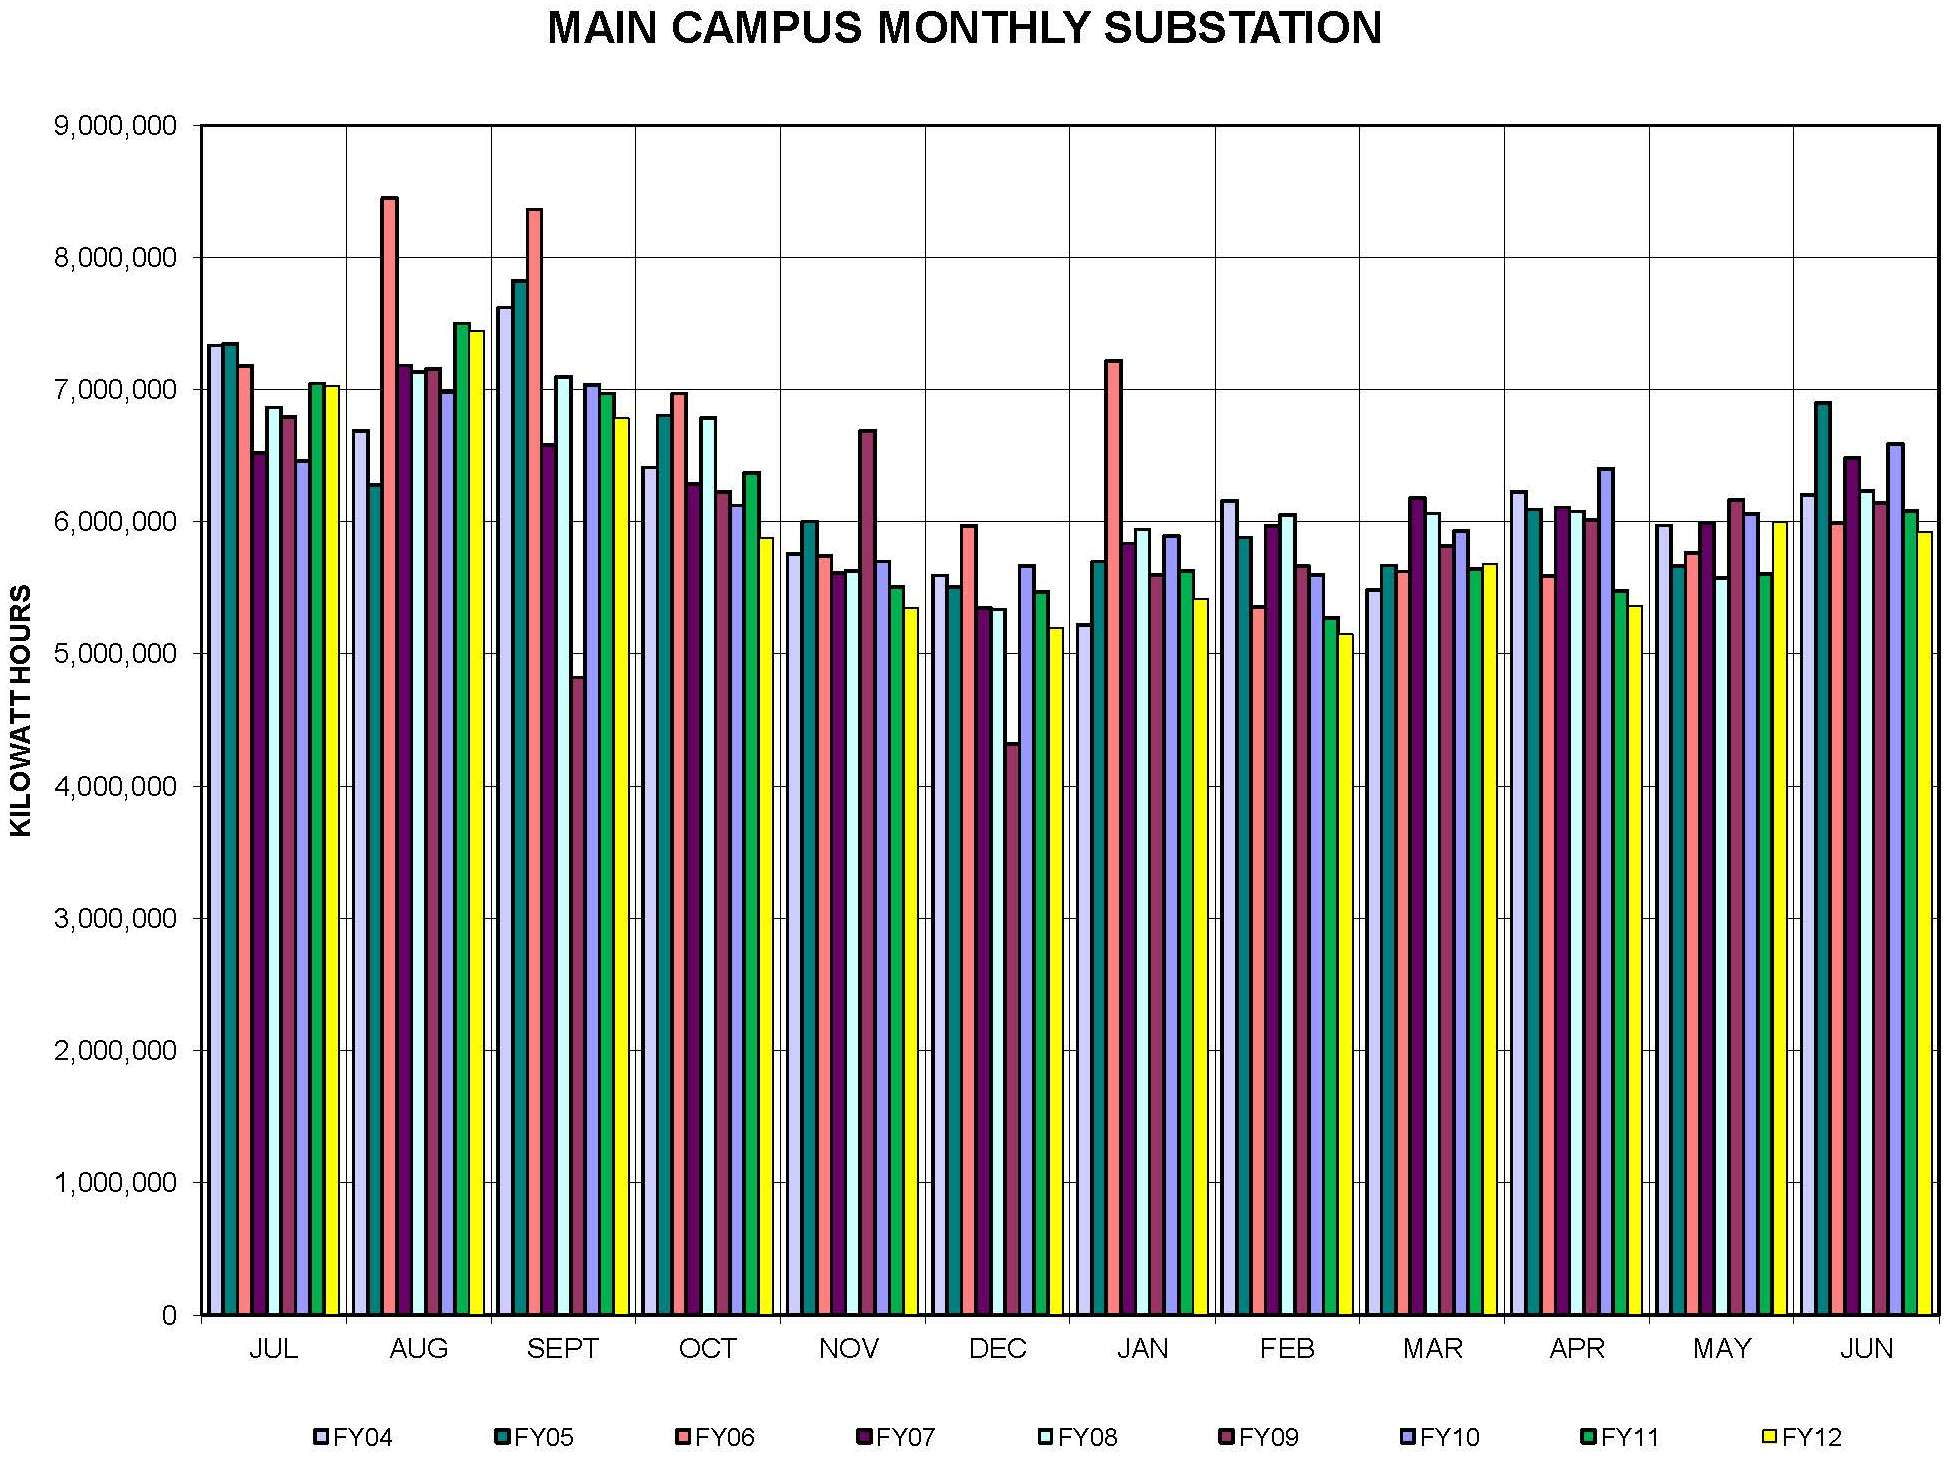 Main Campus Monthly Substation Usage from FY 2006 - 2012